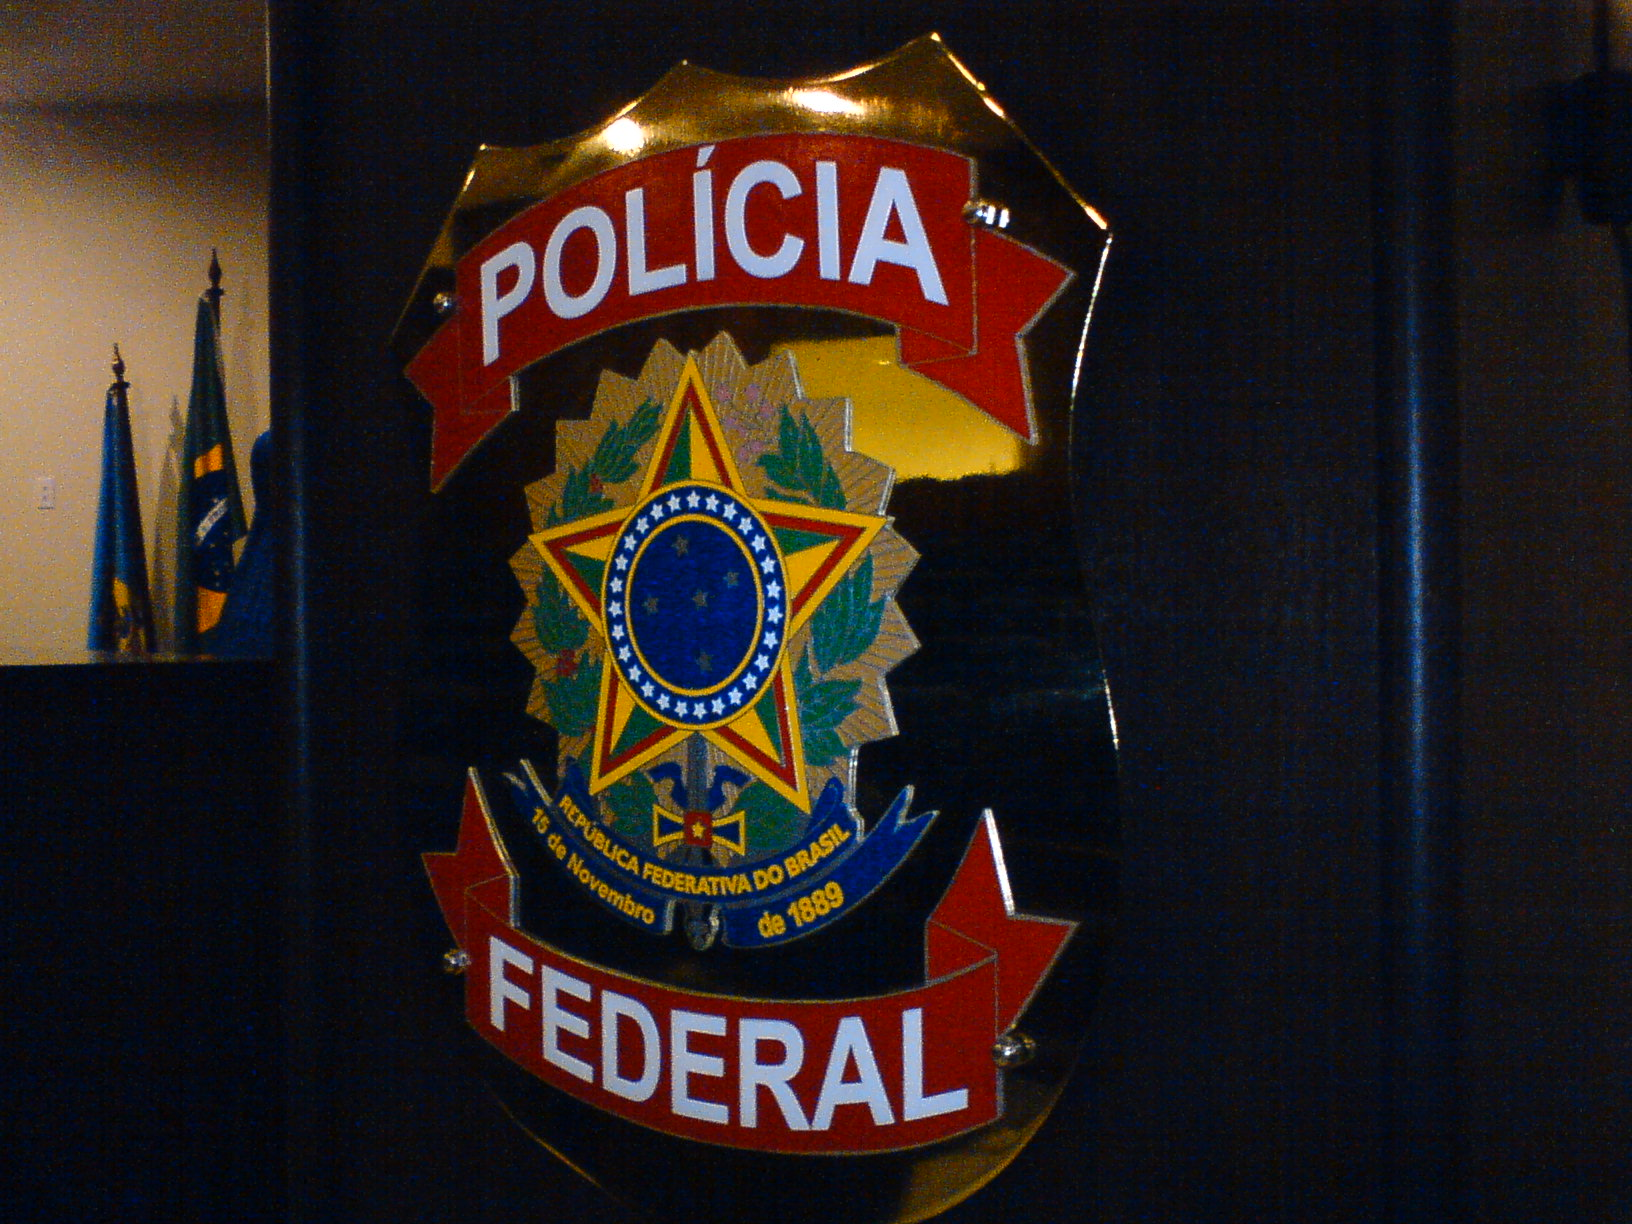 http://upload.wikimedia.org/wikipedia/commons/6/6a/Brasao_Policia_Federal_auditorio_RN.jpg